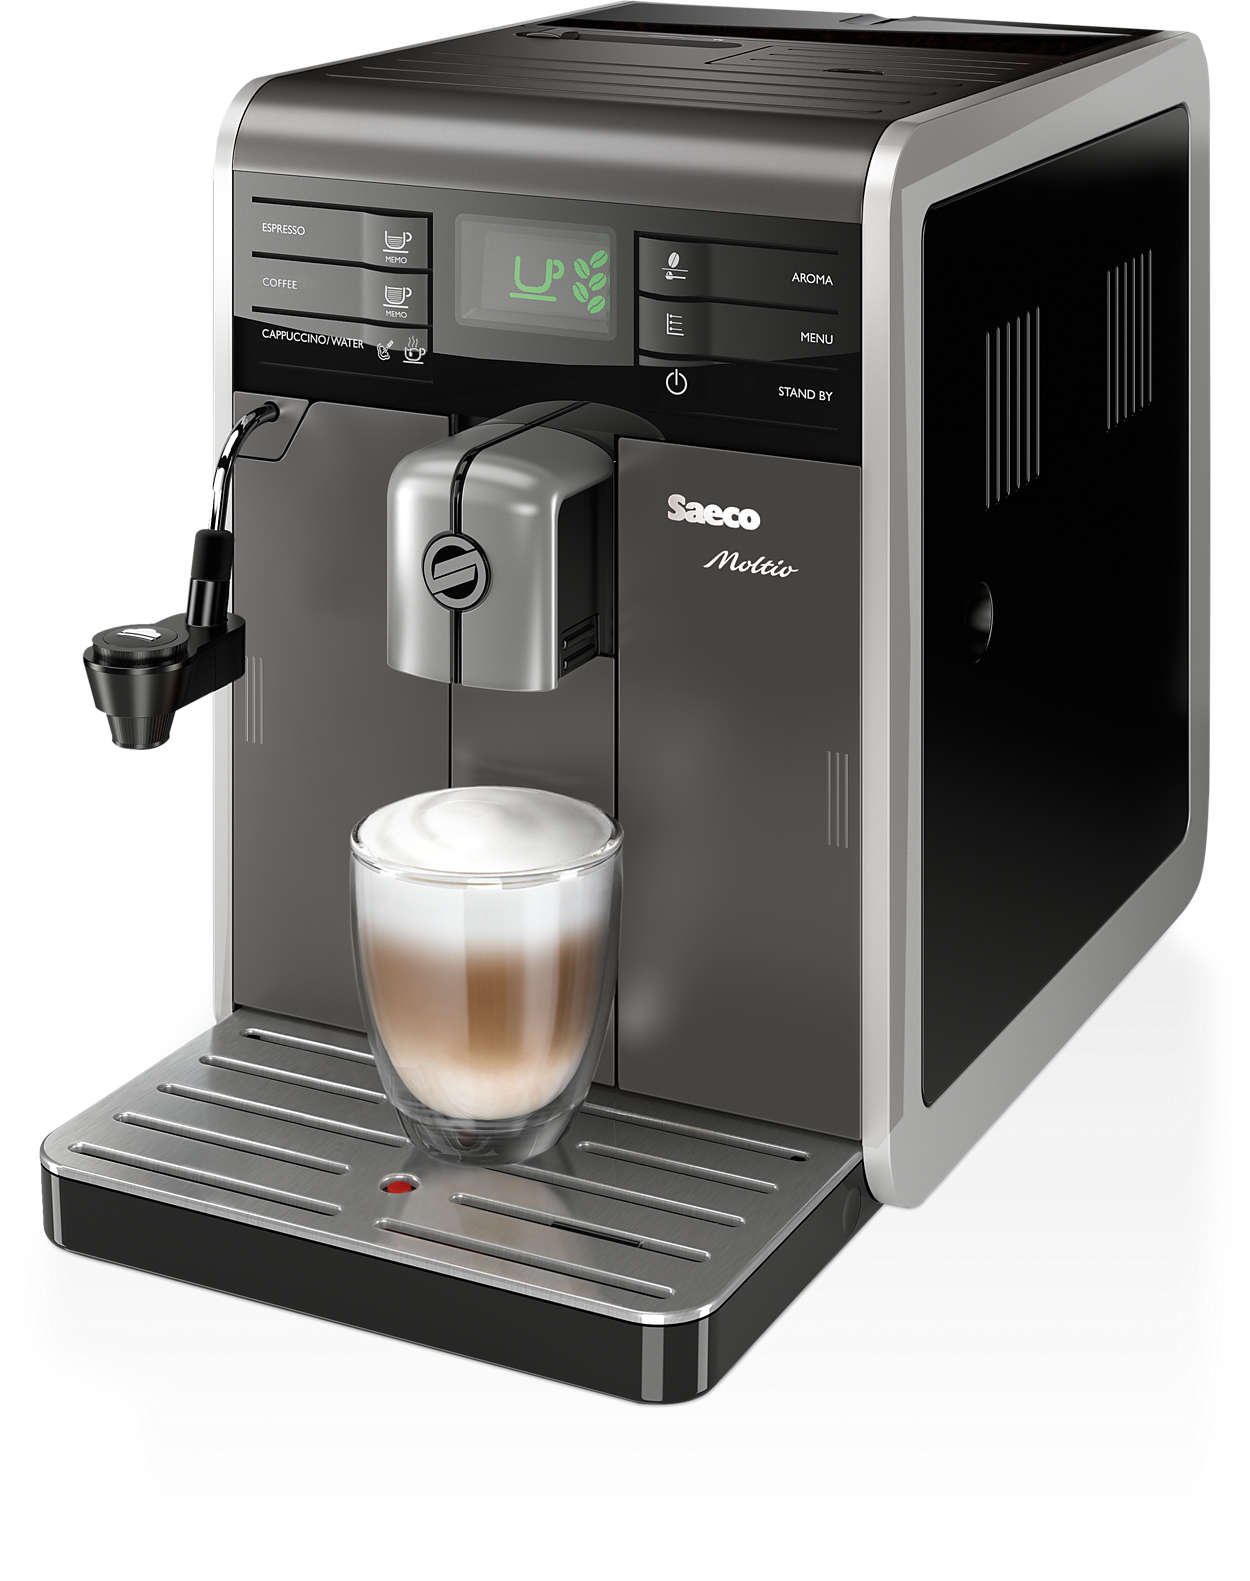 moltio super automatic espresso machine hd8768 03 saeco. Black Bedroom Furniture Sets. Home Design Ideas